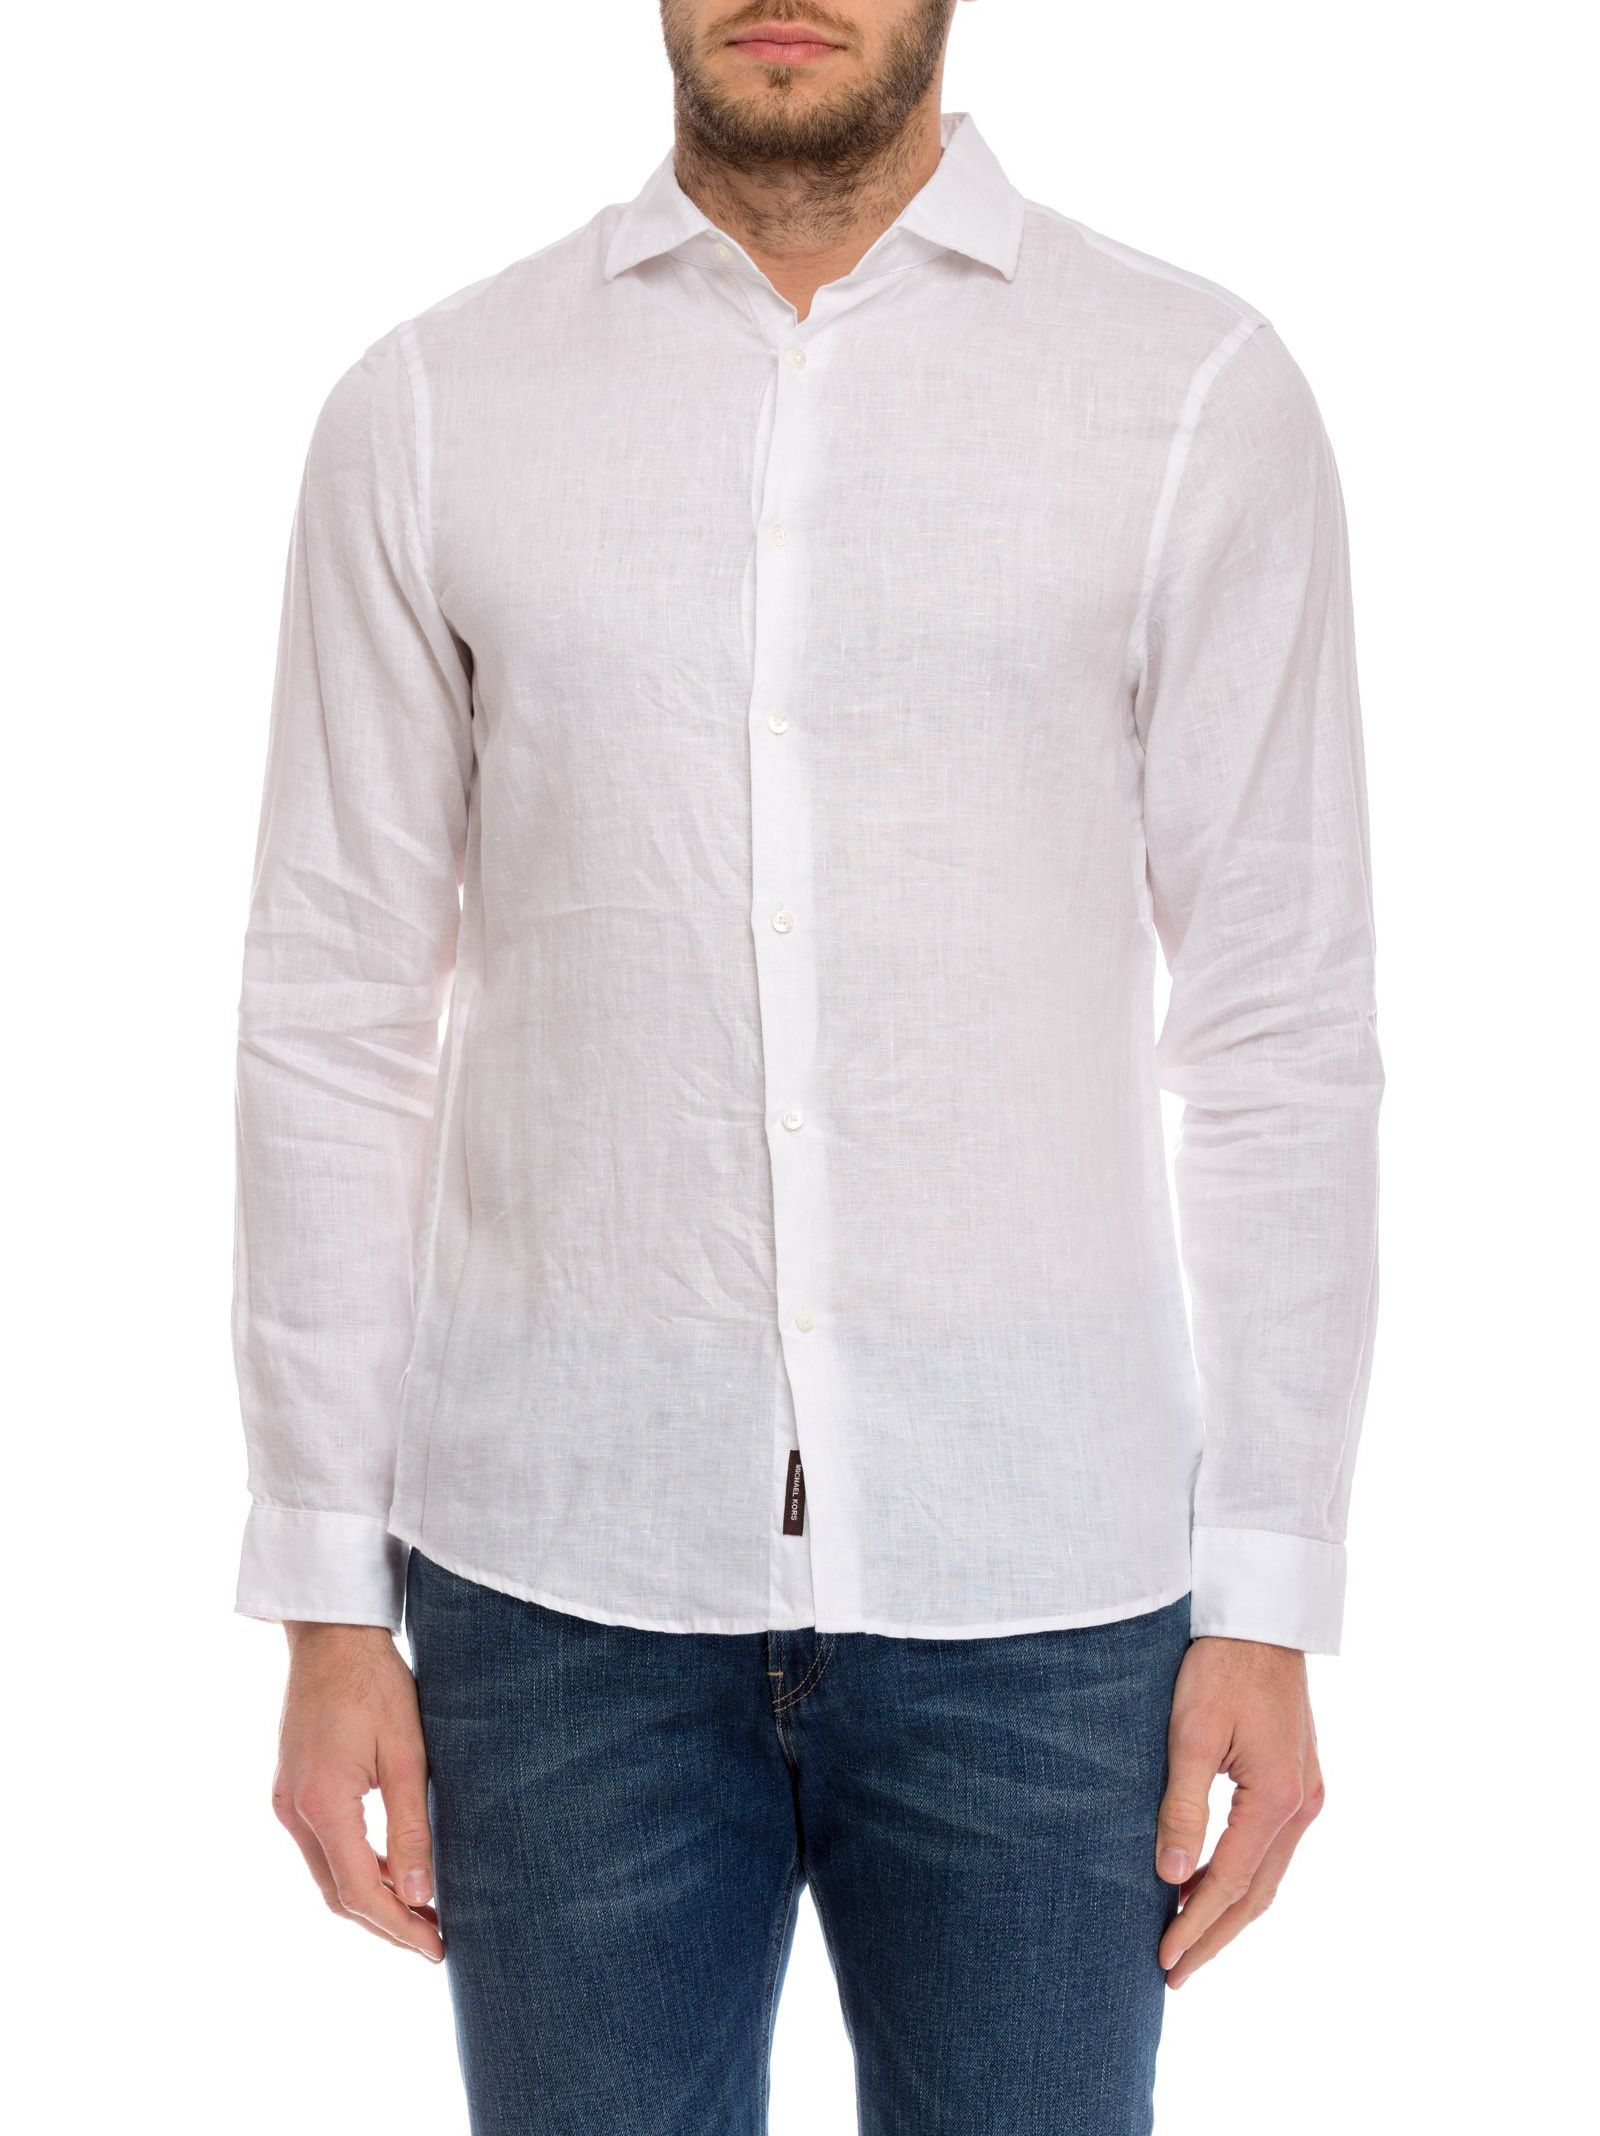 michael kors male 45883 michael kors classic button down shirt